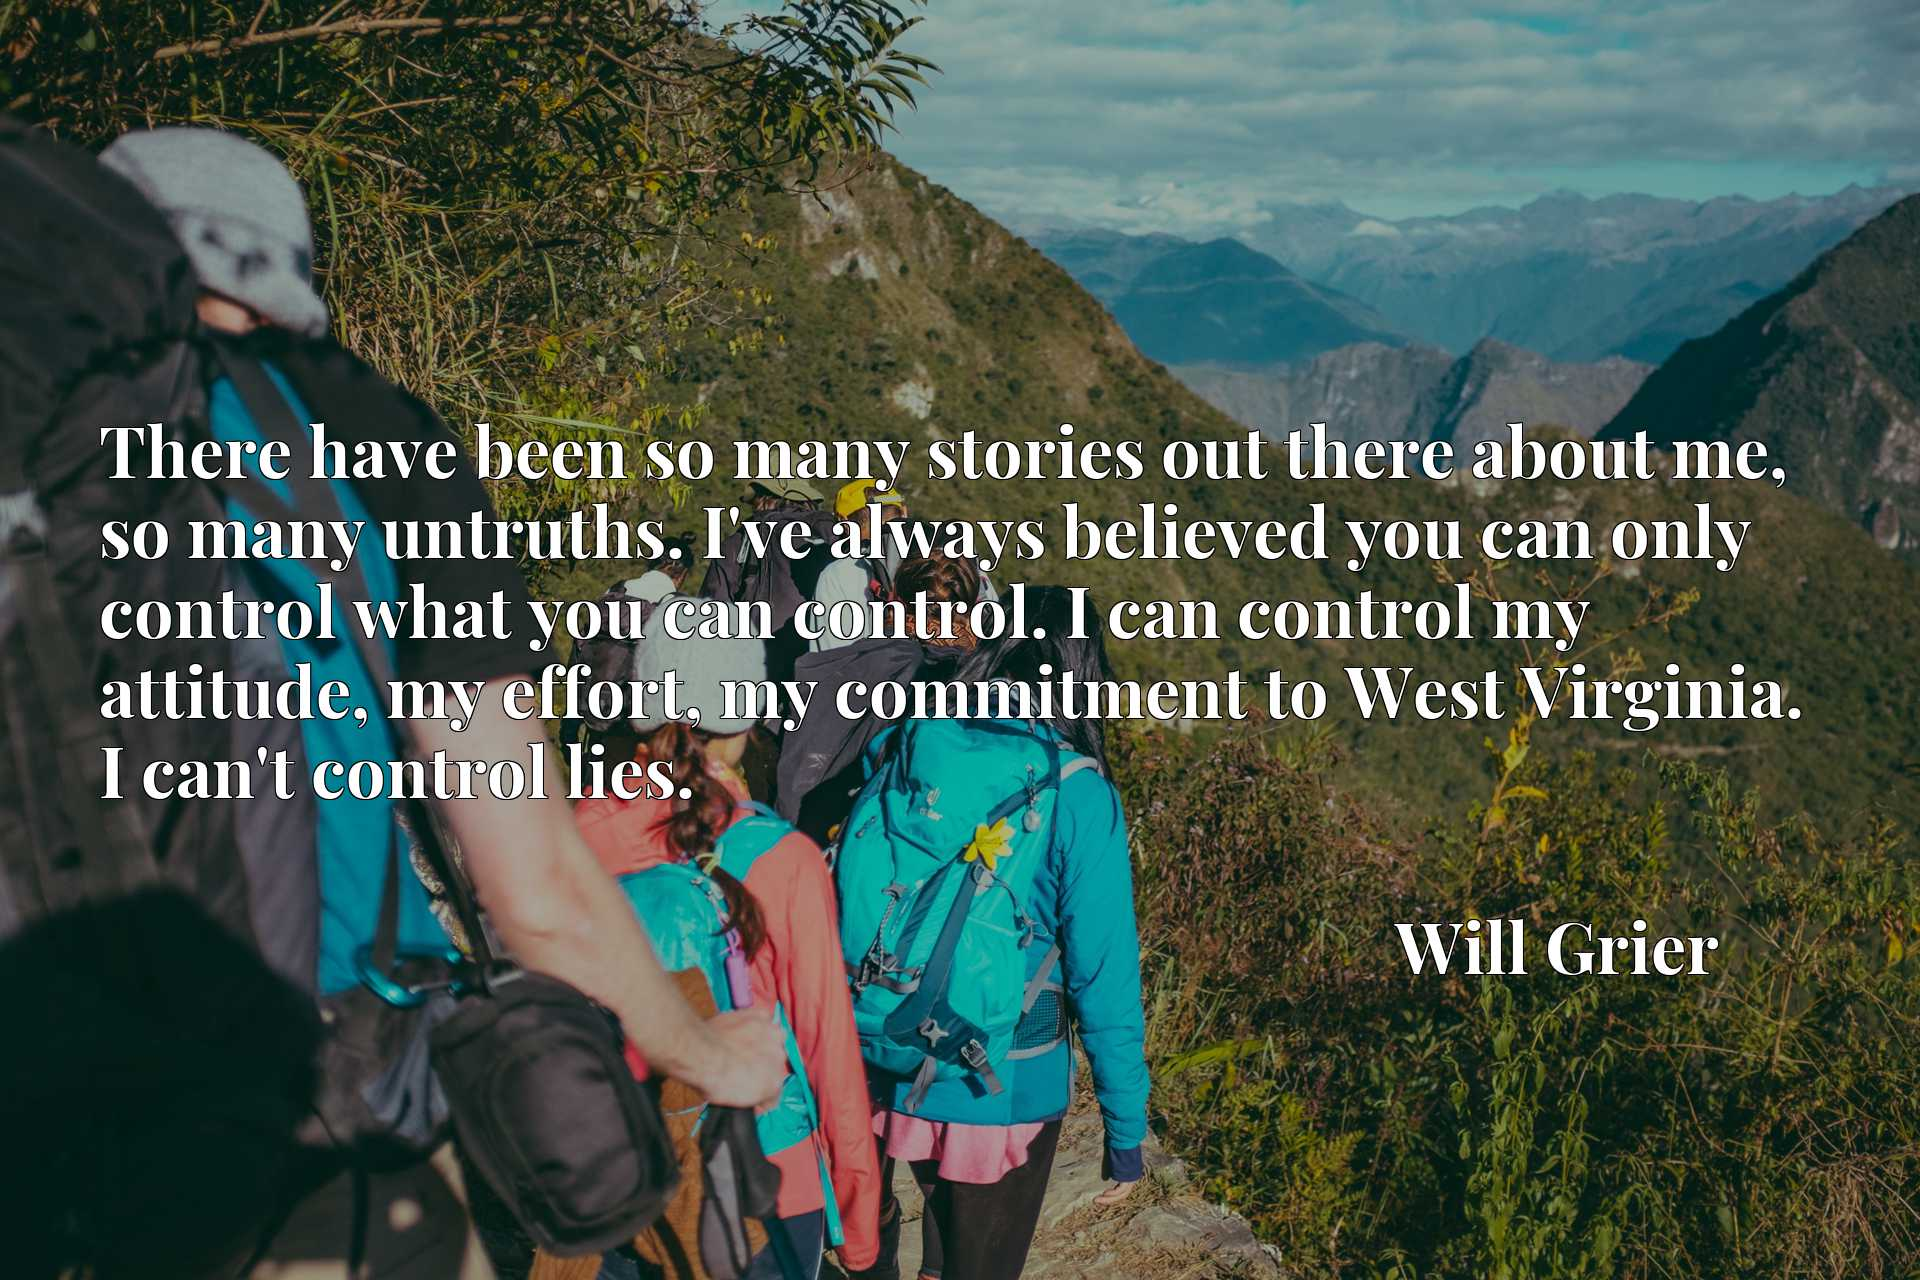 There have been so many stories out there about me, so many untruths. I've always believed you can only control what you can control. I can control my attitude, my effort, my commitment to West Virginia. I can't control lies.